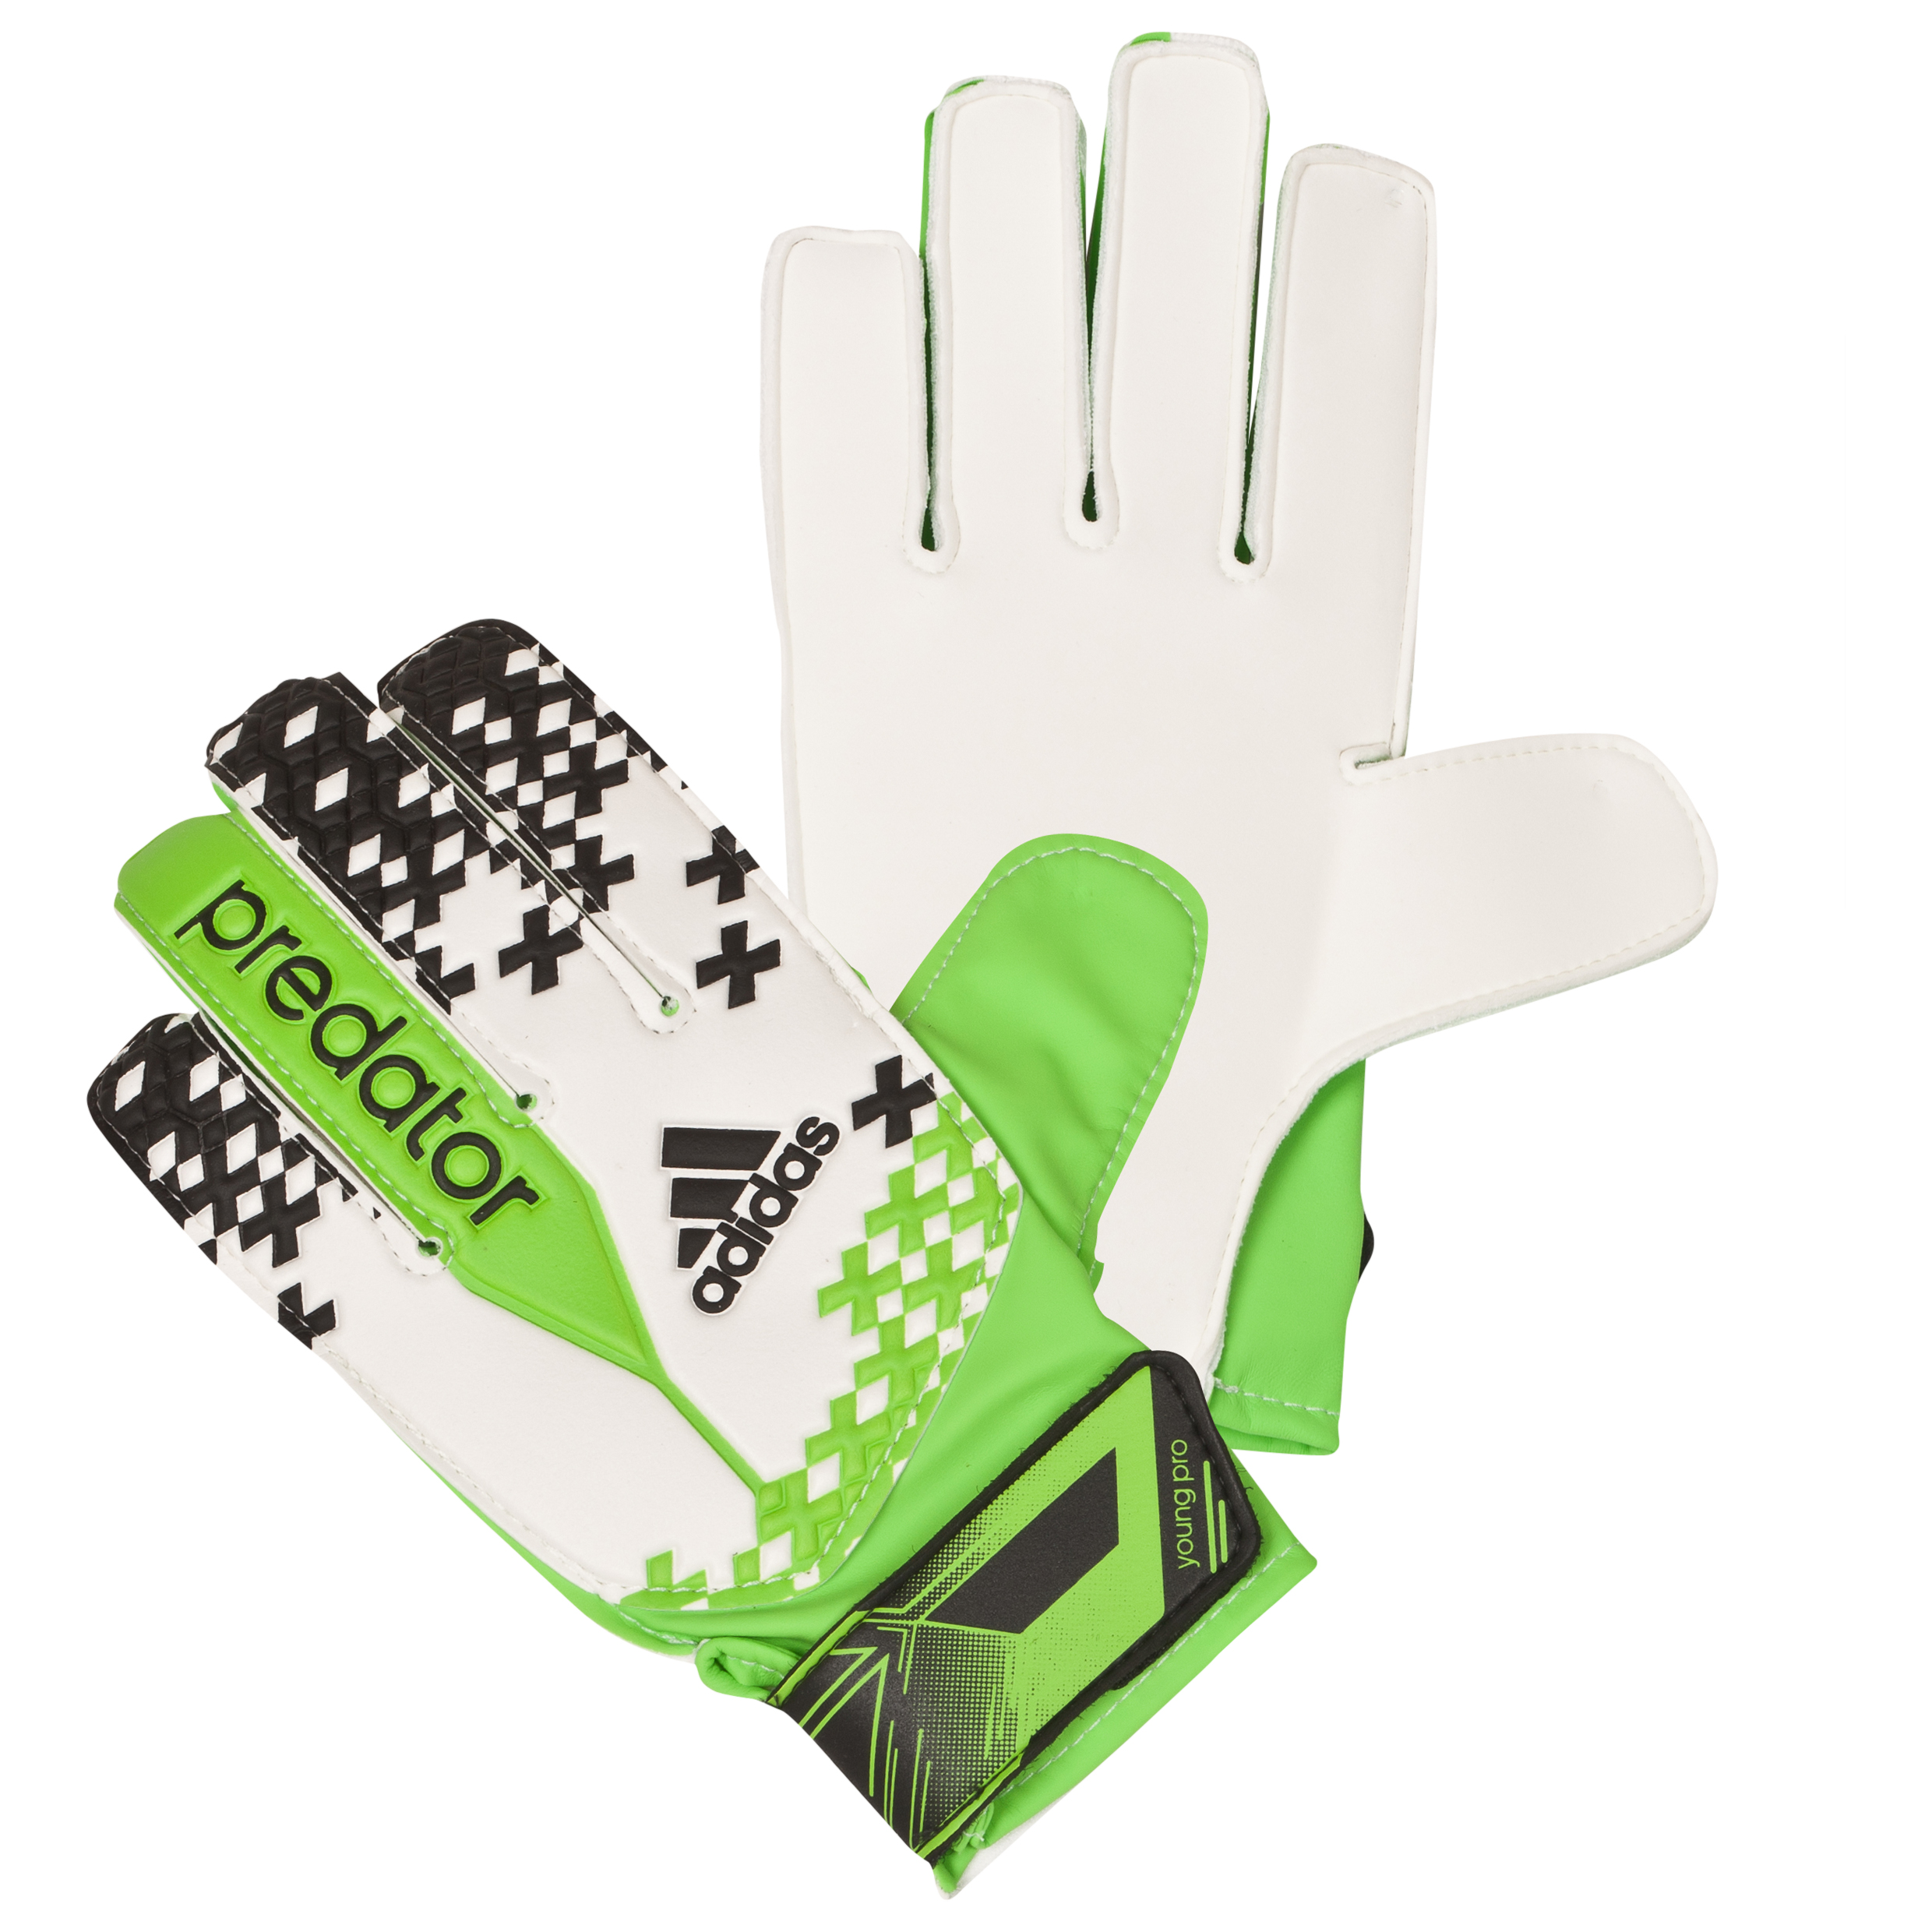 Adidas Predator Young Pro Goalkeeper Gloves White